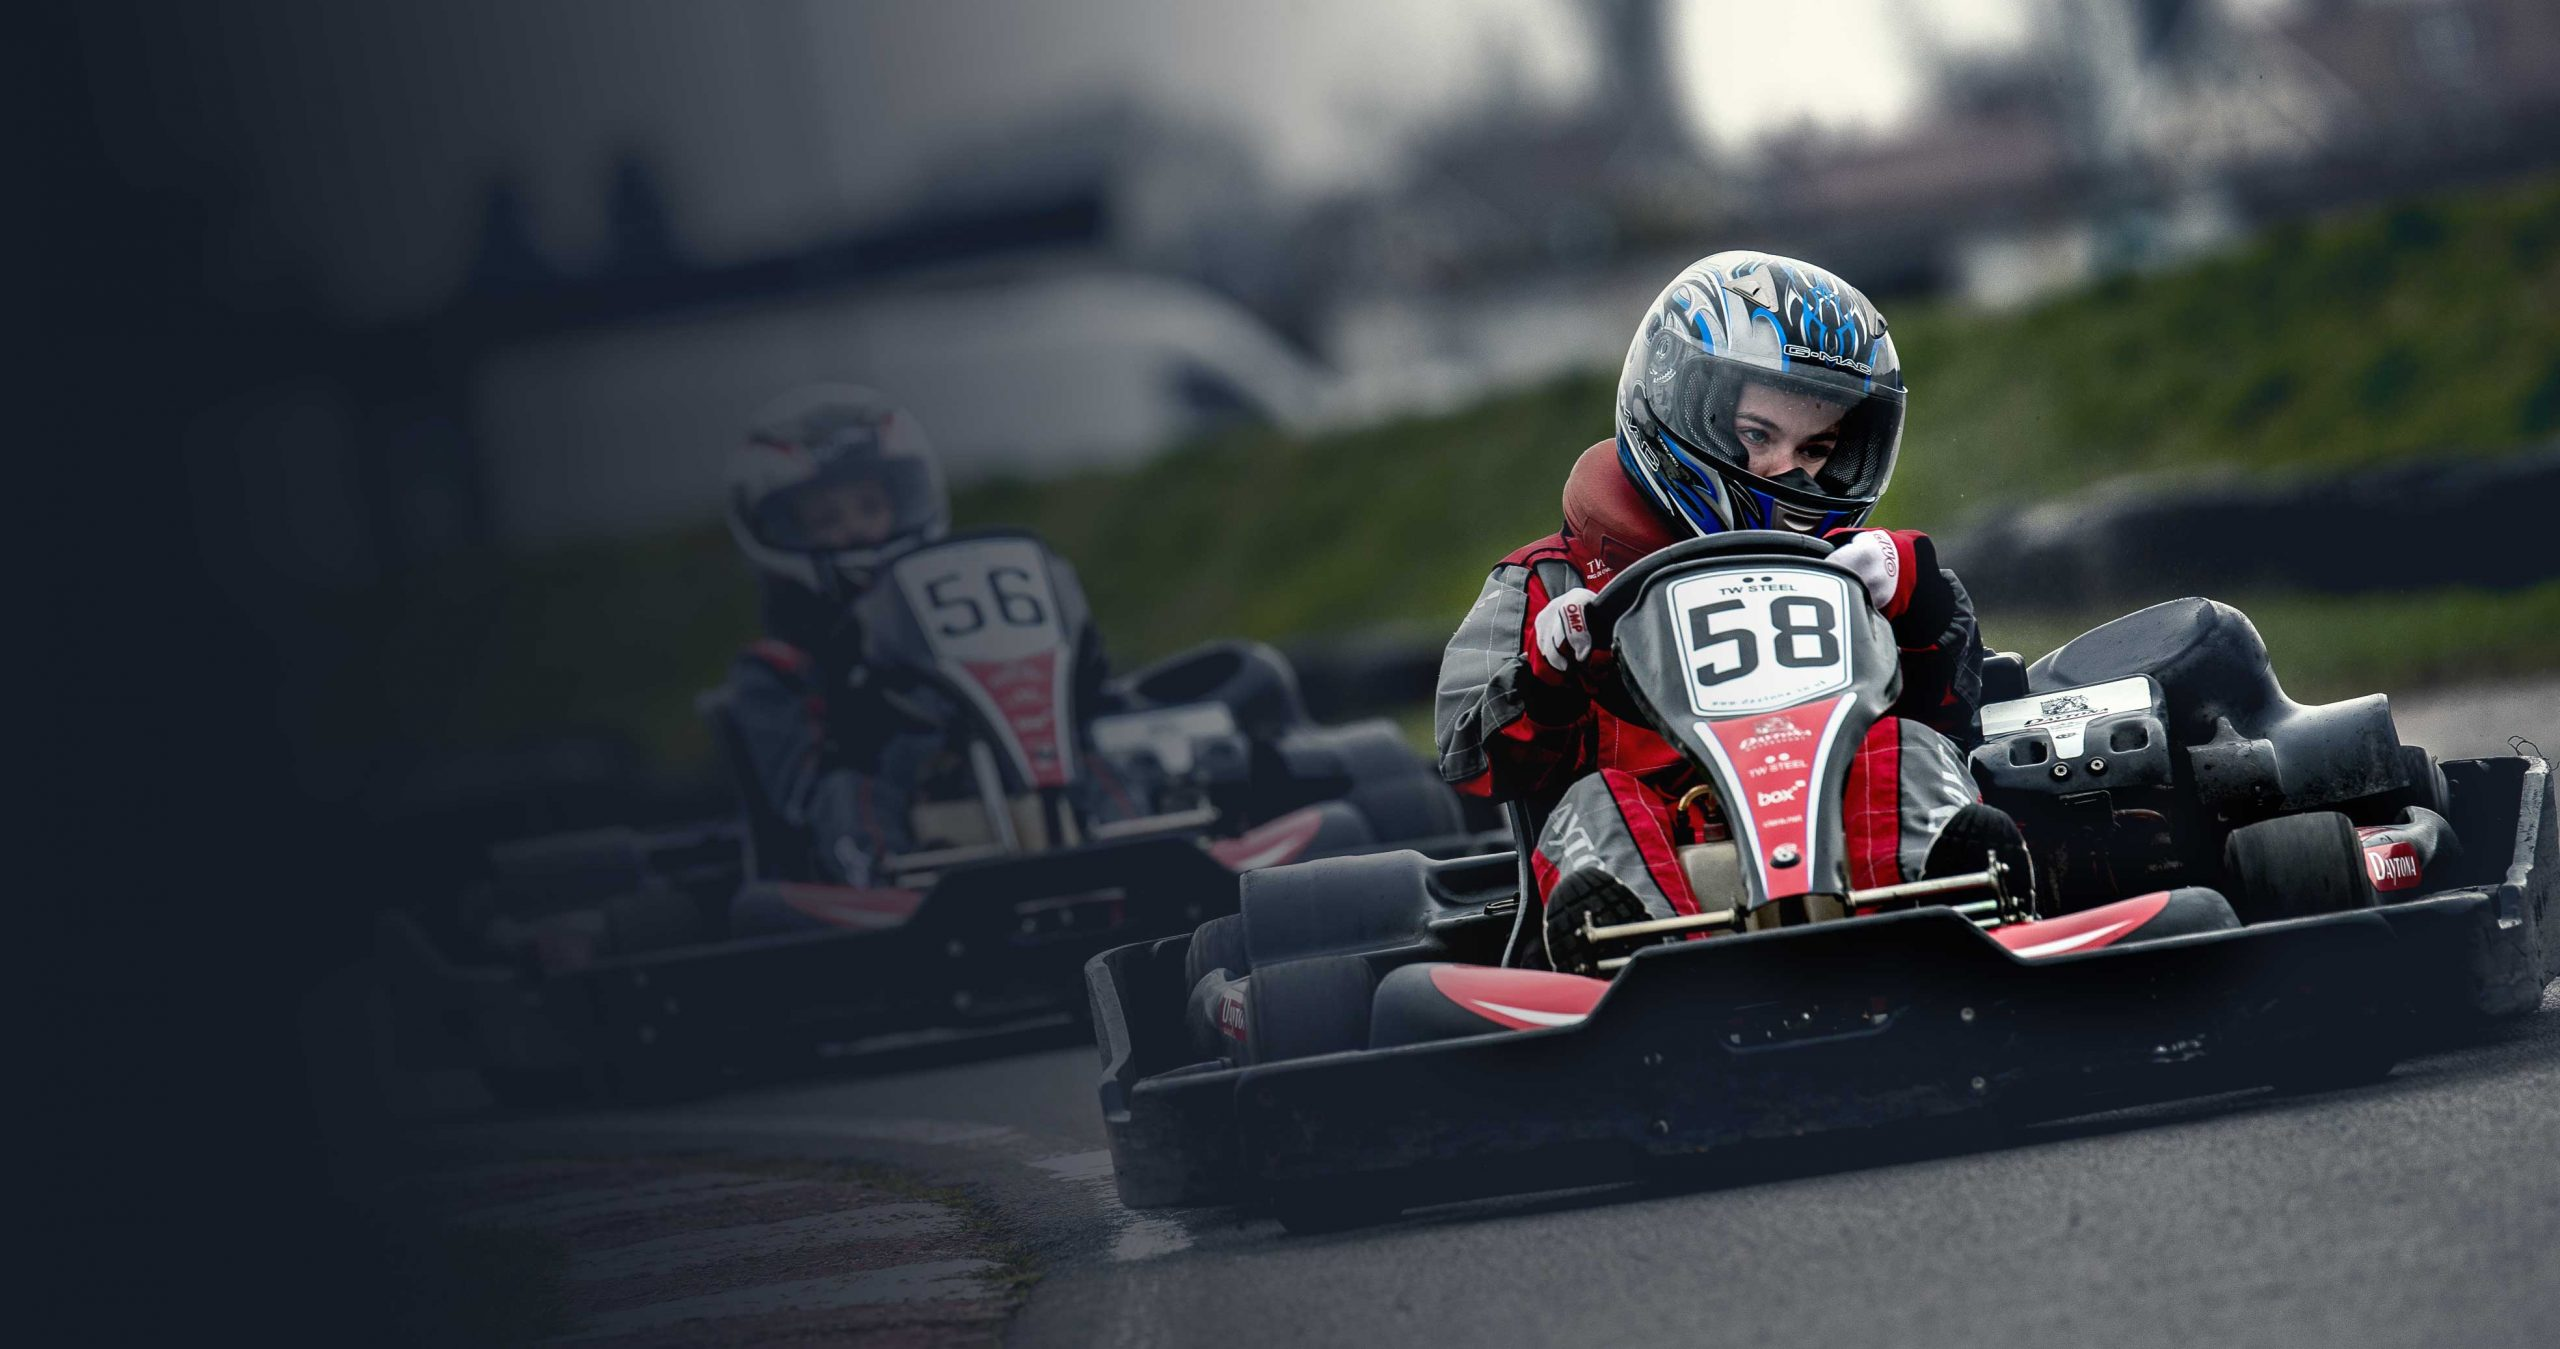 Masterclass Go-Karting Tuition